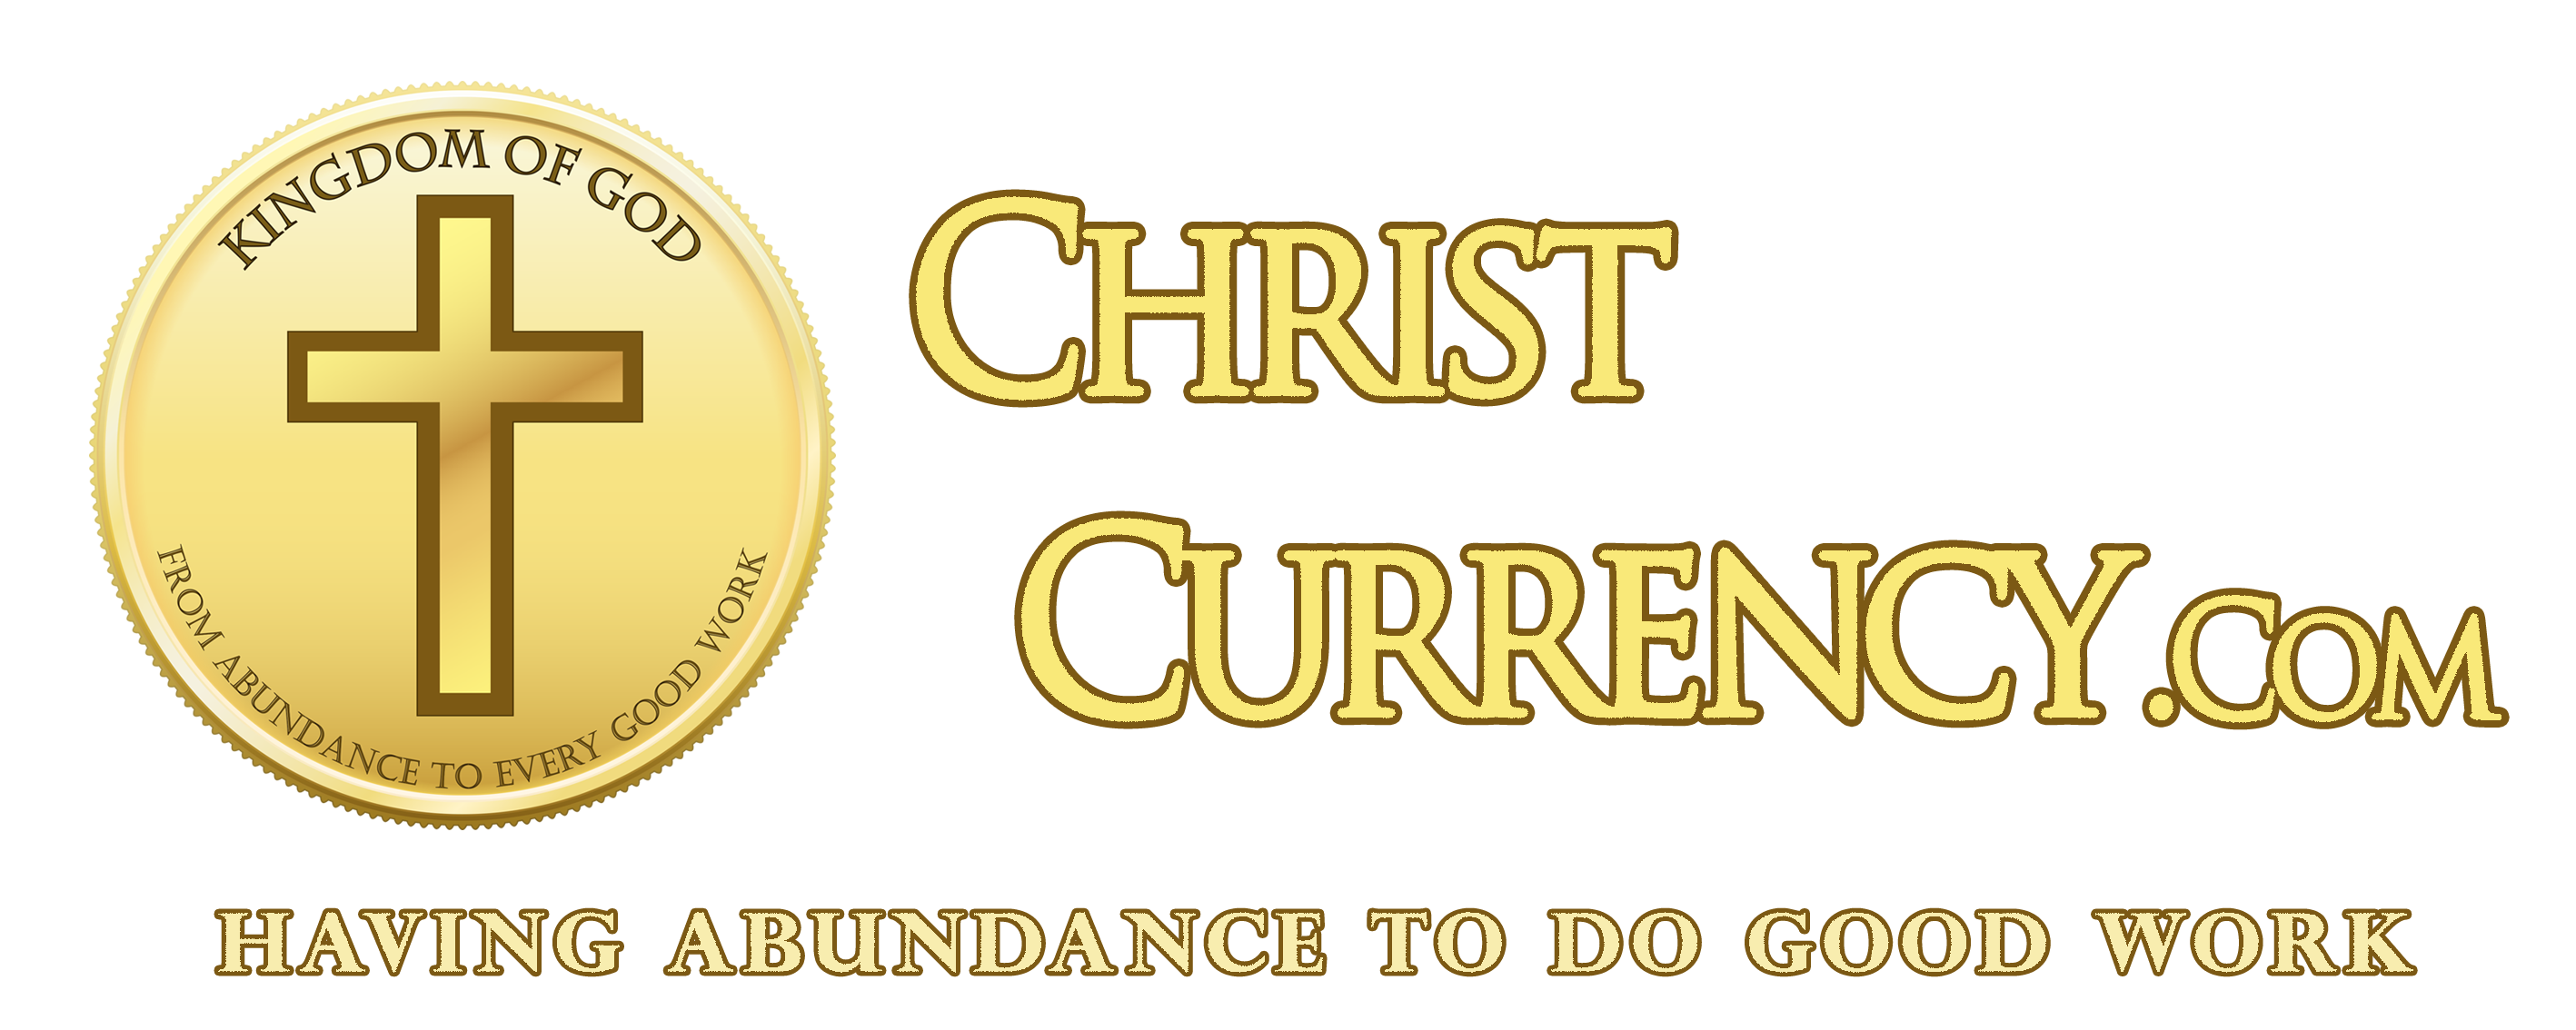 Christ Currency logo